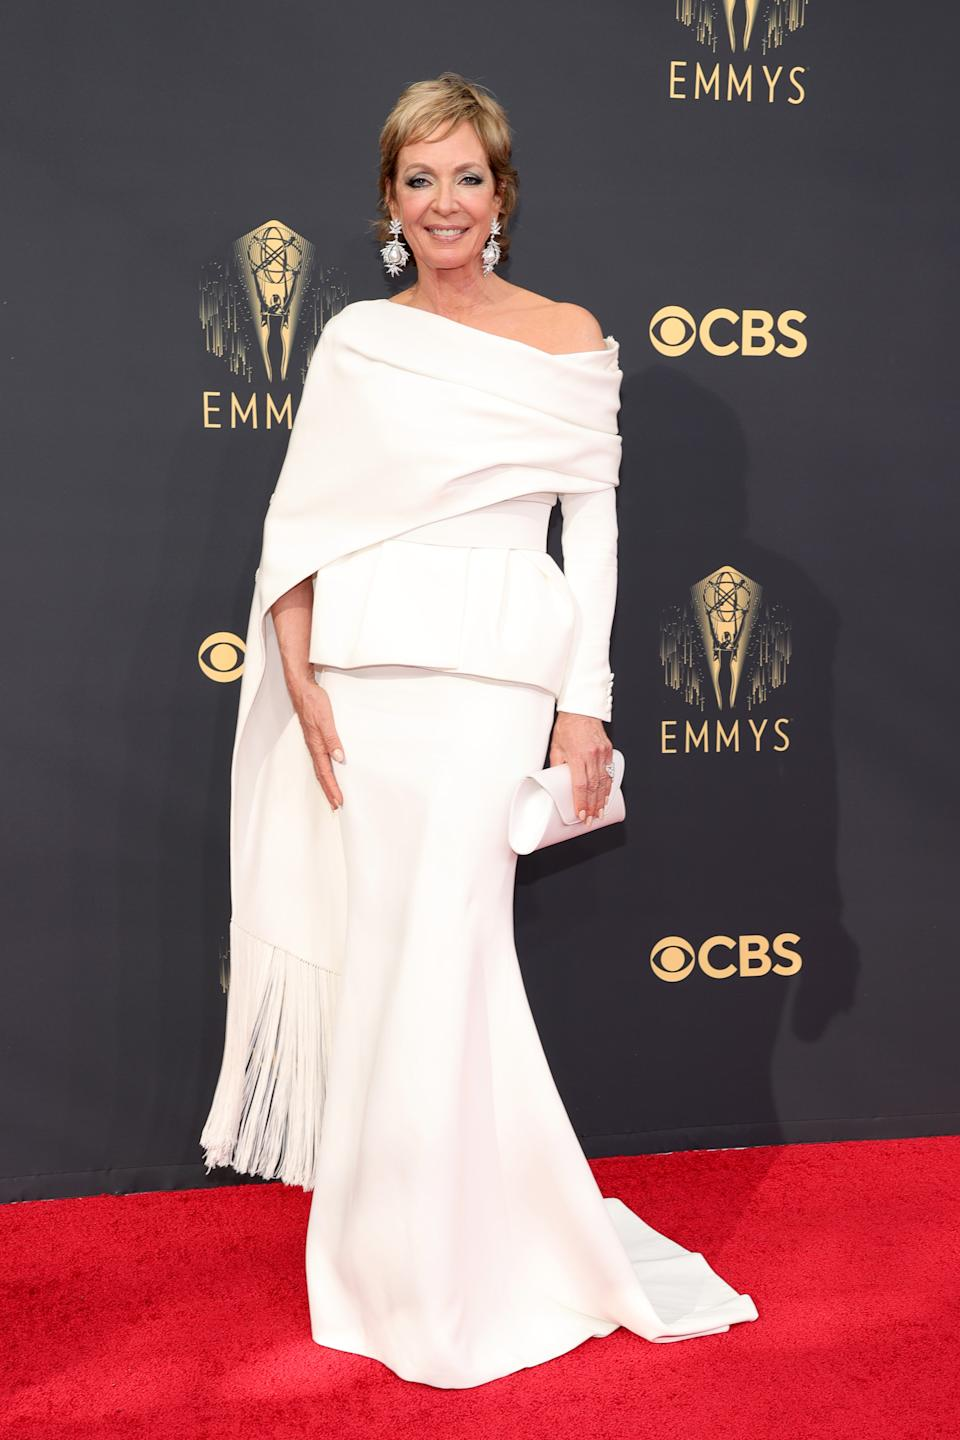 Allison Janney wears a white gown with a fringed cape at the 73rd Primetime Emmy Awards at L.A. LIVE on September 19, 2021 in Los Angeles, California. (Photo by Rich Fury/Getty Images)